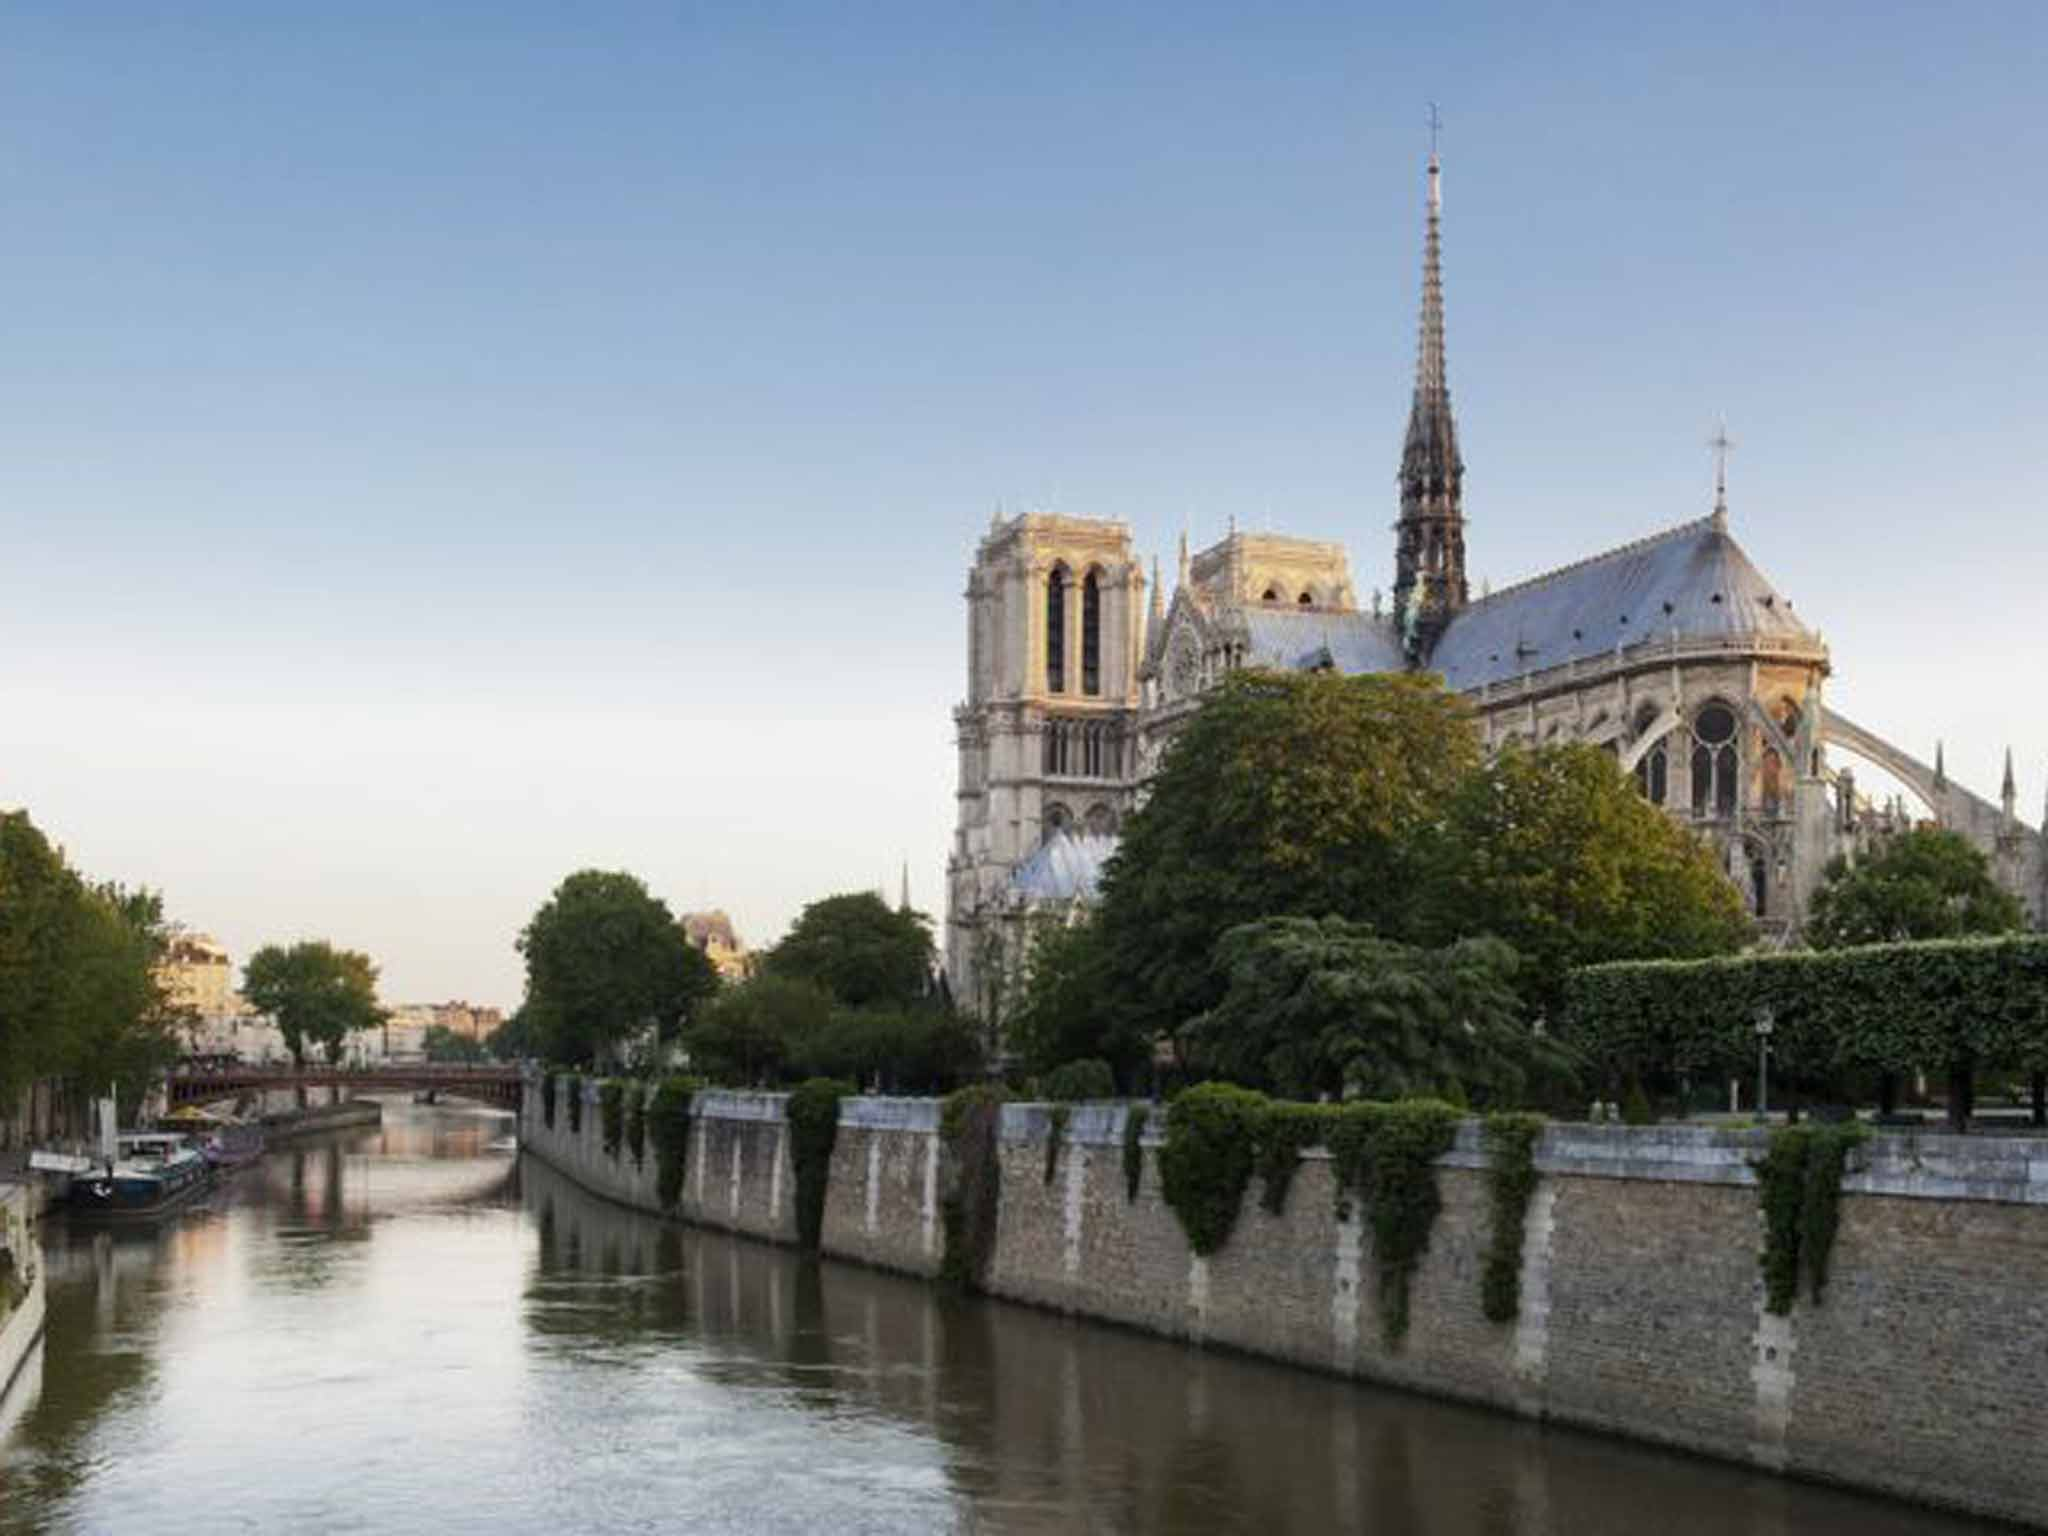 Paris travel tips: Where to go and what to see in 48 hours